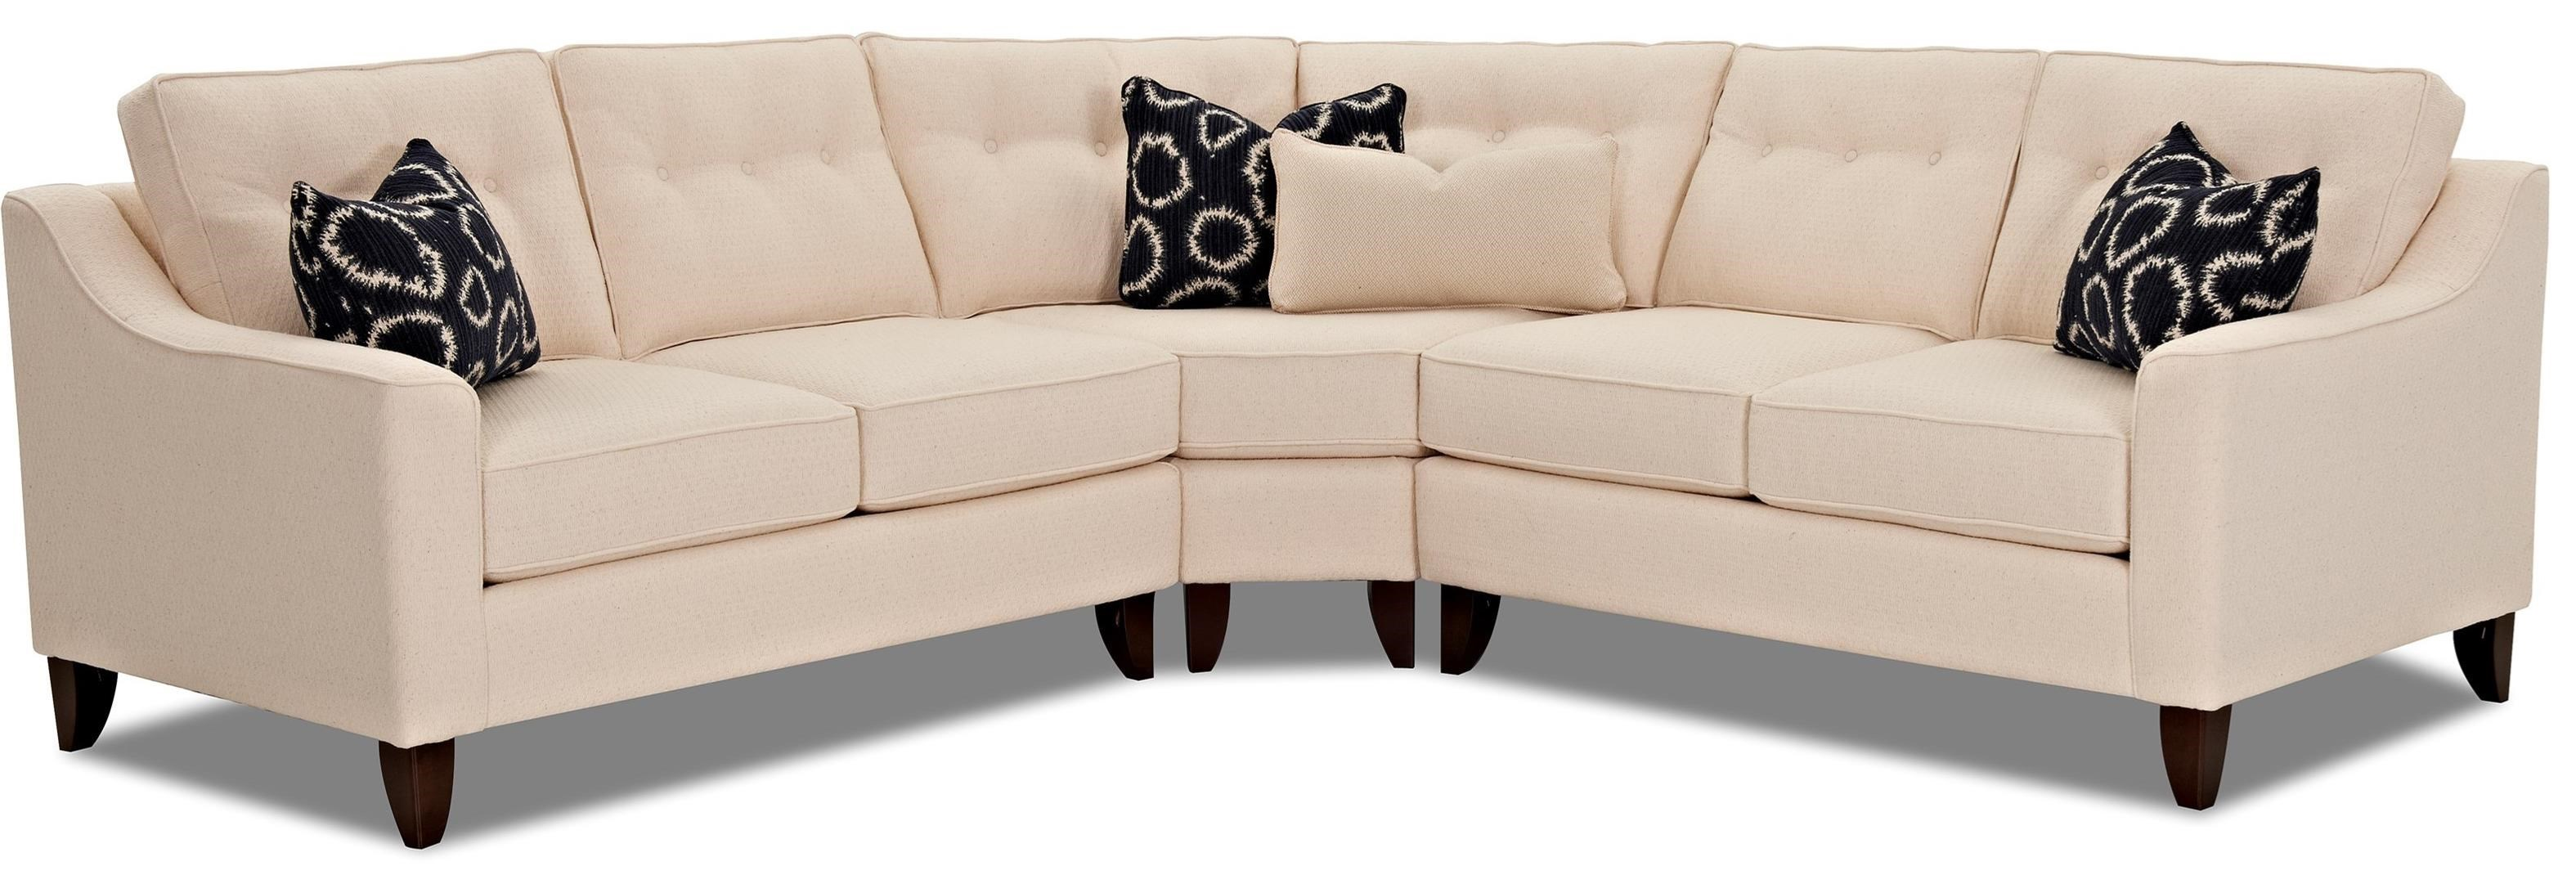 Klaussner Audrina Contemporary 3 Piece Sectional with Wedge  sc 1 st  Wayside Furniture : wedge sectional - Sectionals, Sofas & Couches